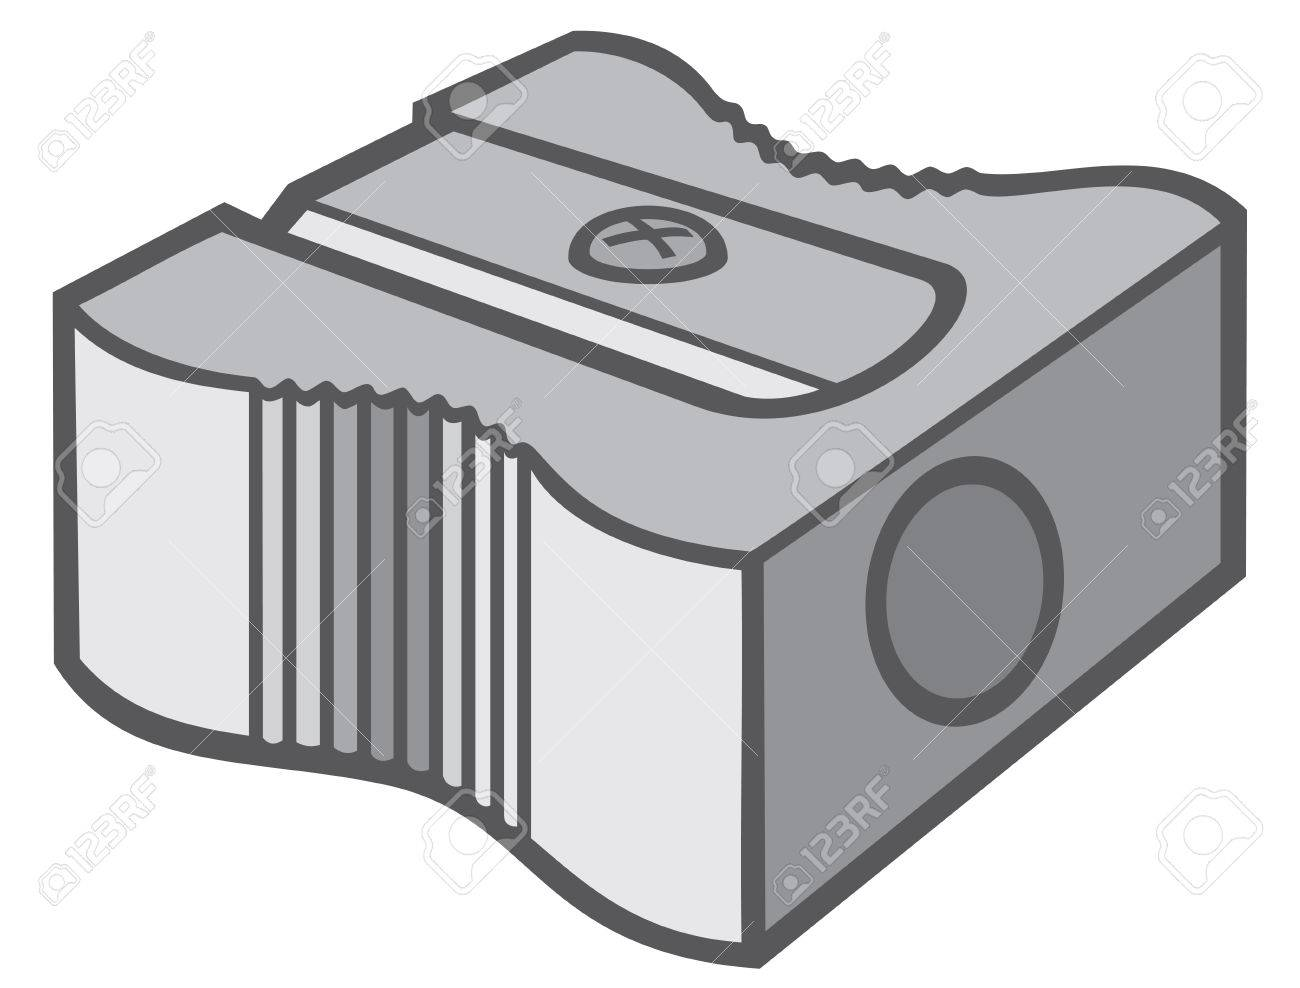 Pencil Sharpener Stock Vector